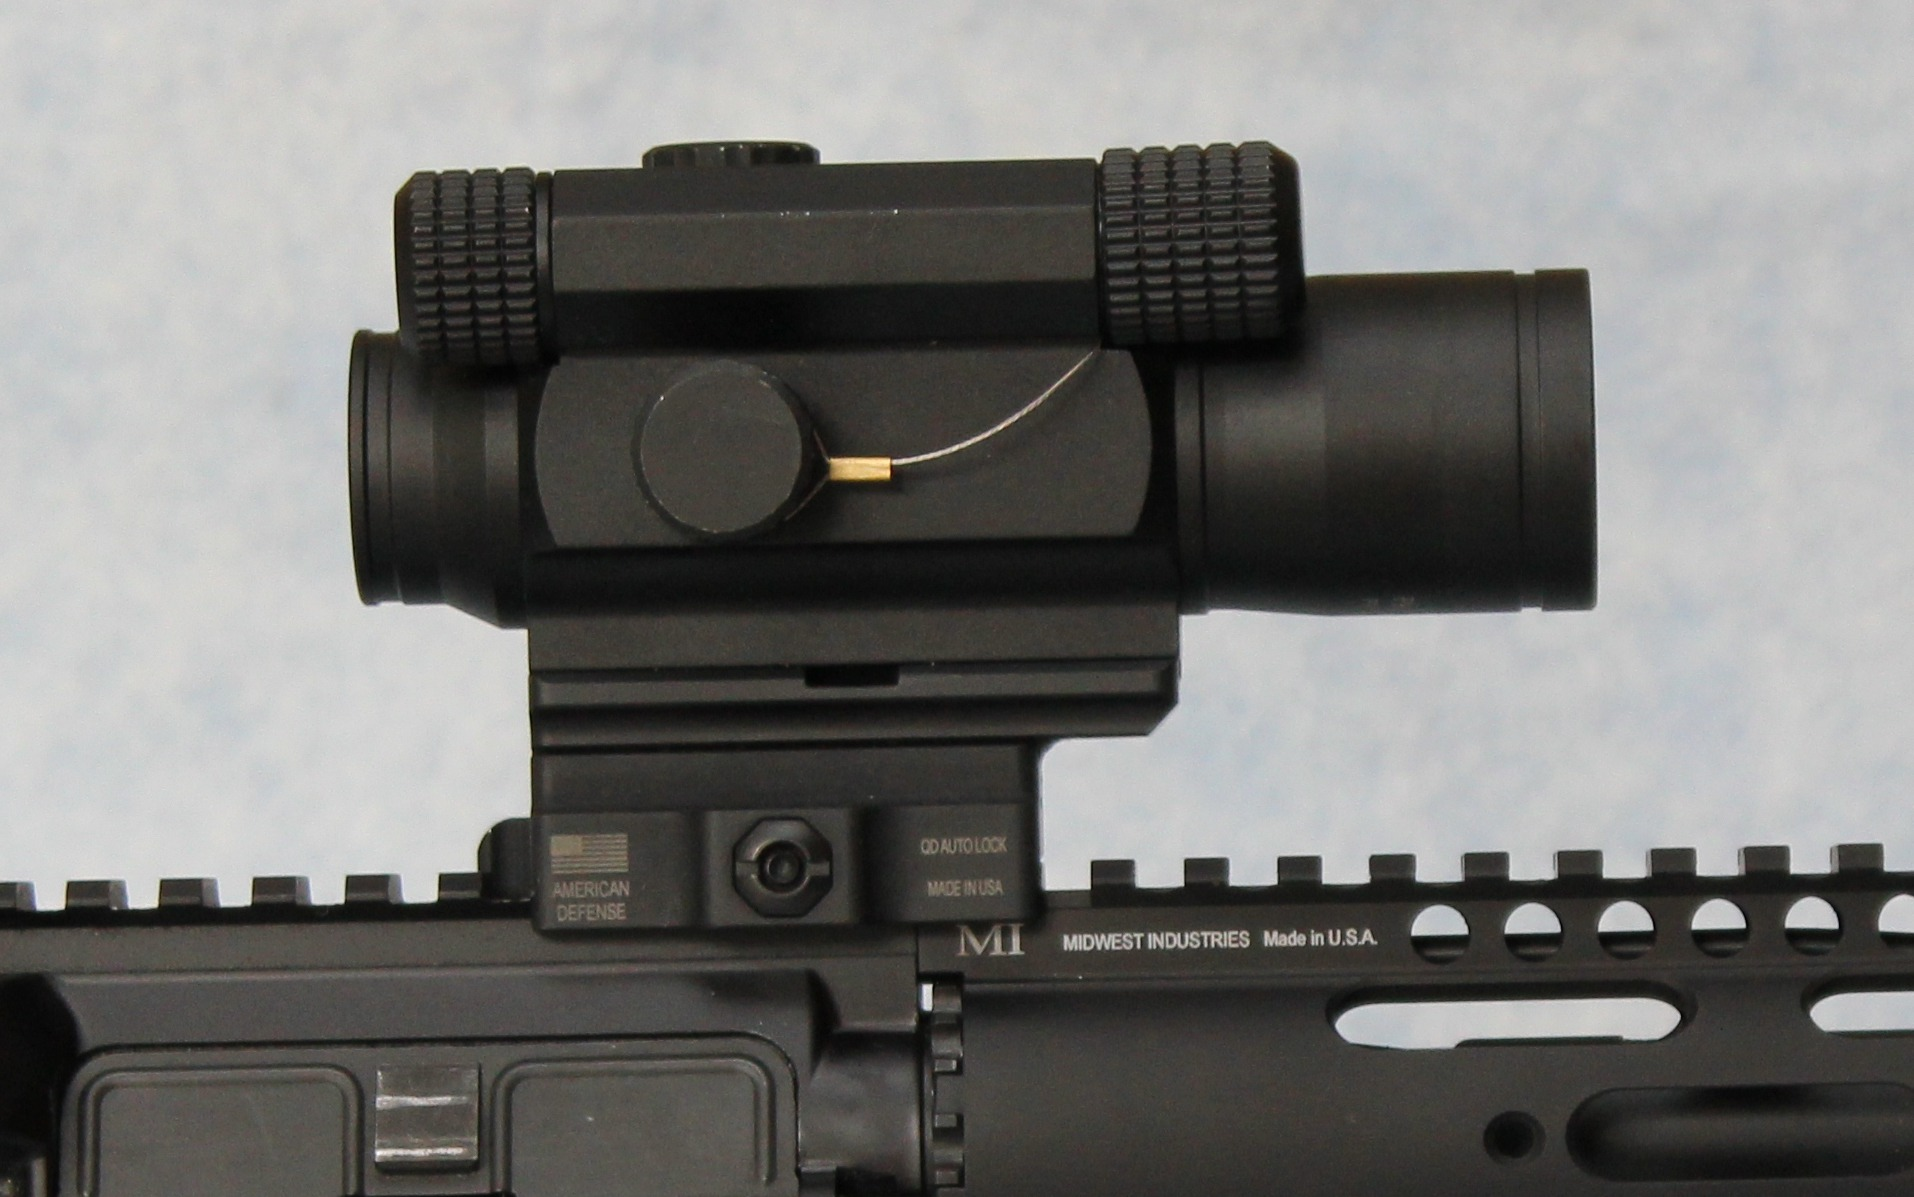 Consumer scope review: Primary Arms Gen 2 AA Battery Red Dot